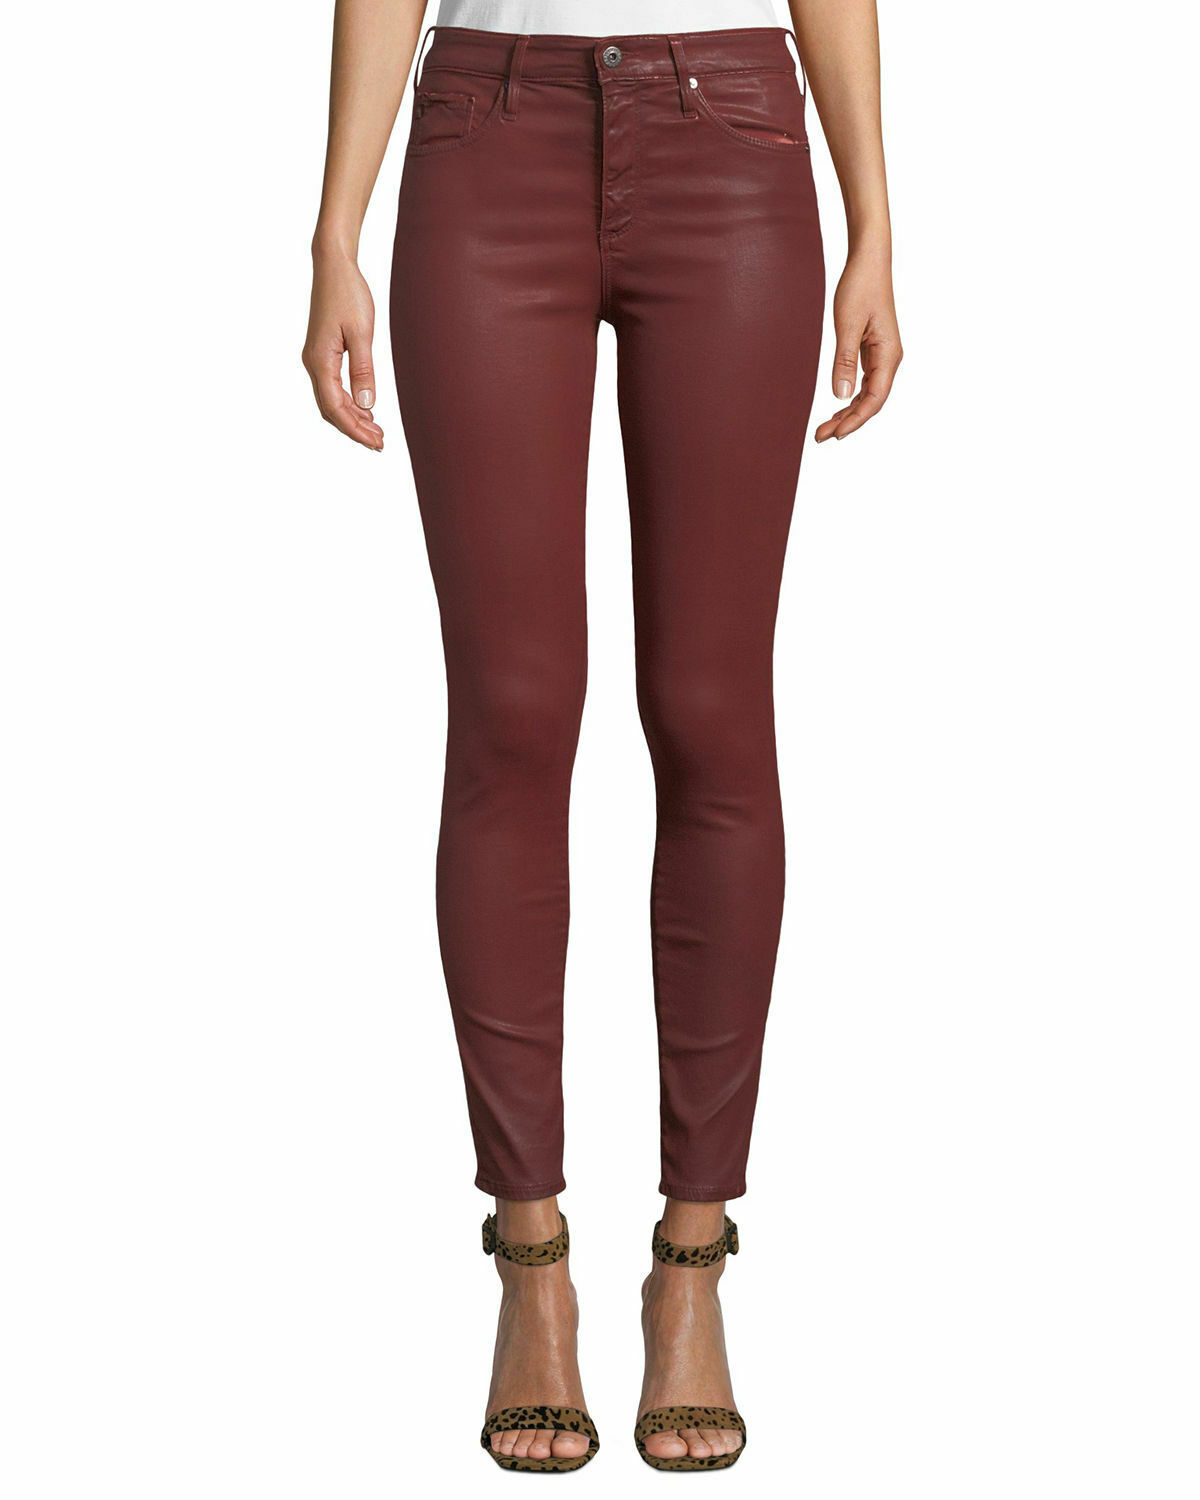 AG The Farrah High-Rise Skinny Ankle Jeans  Sz 24 - NWT Anthropologie